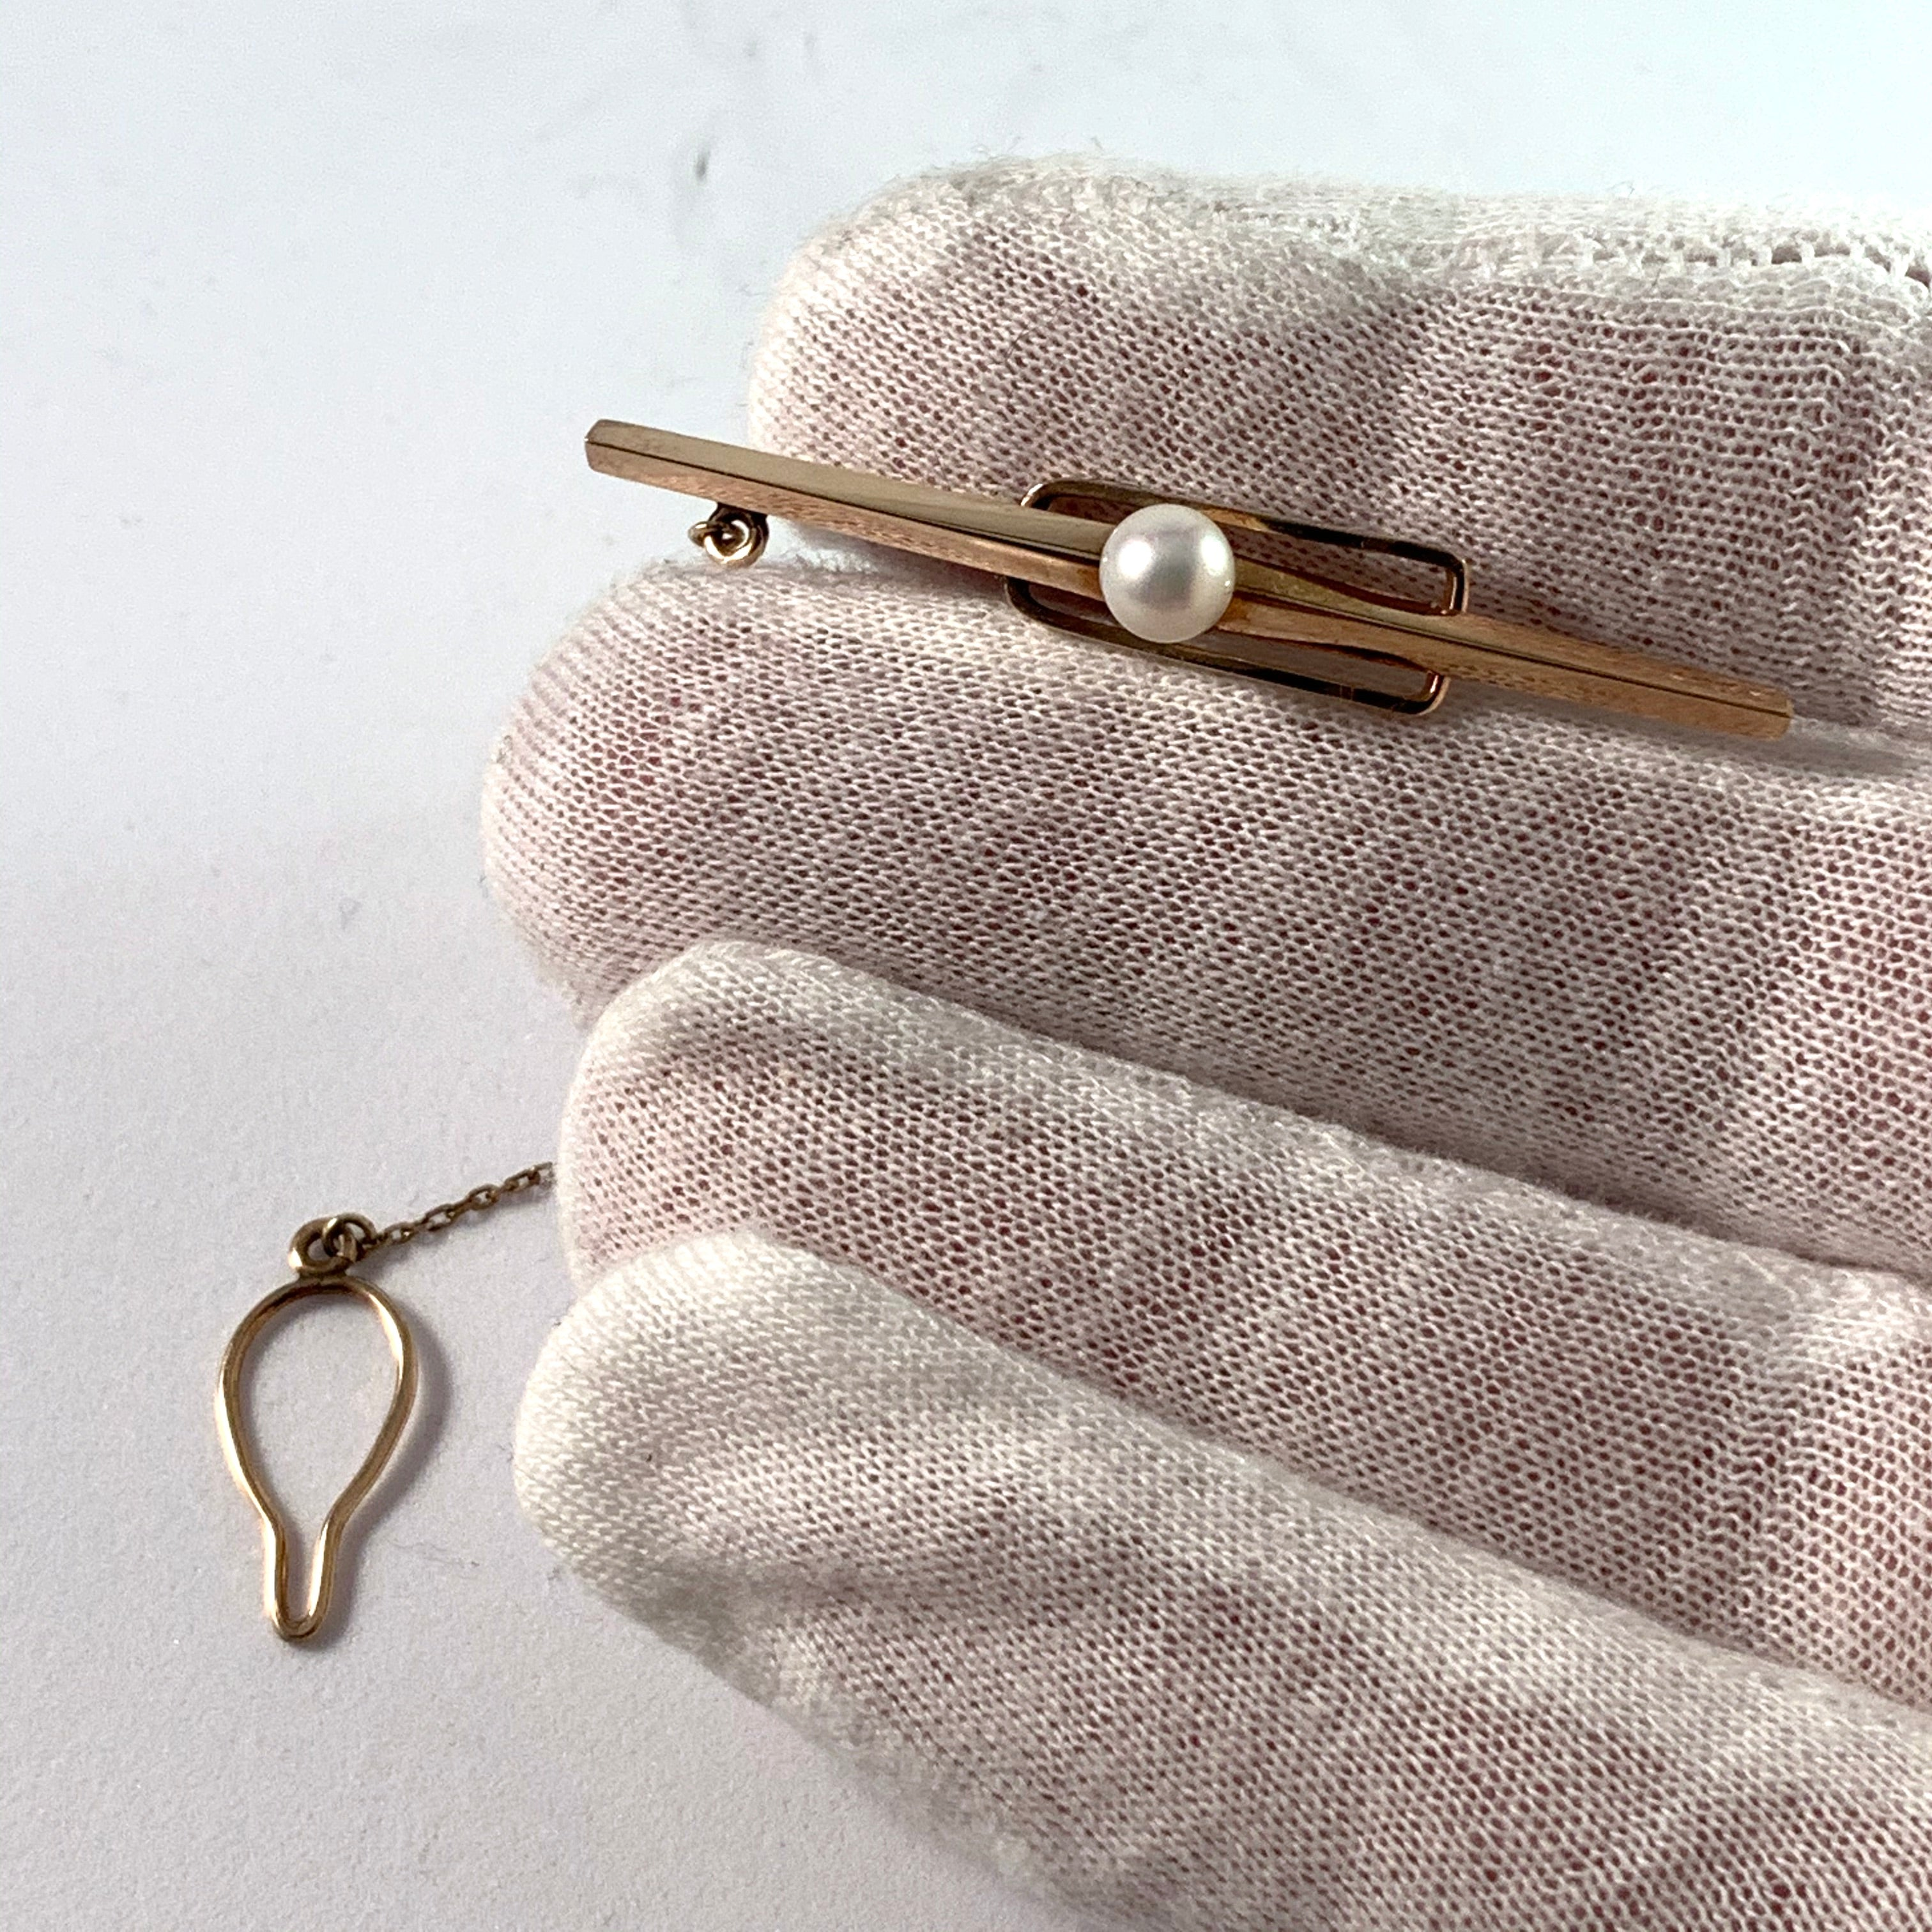 Maker WAKO, Japan Vintage 10k Gold Cultured Pearl Tie Bar